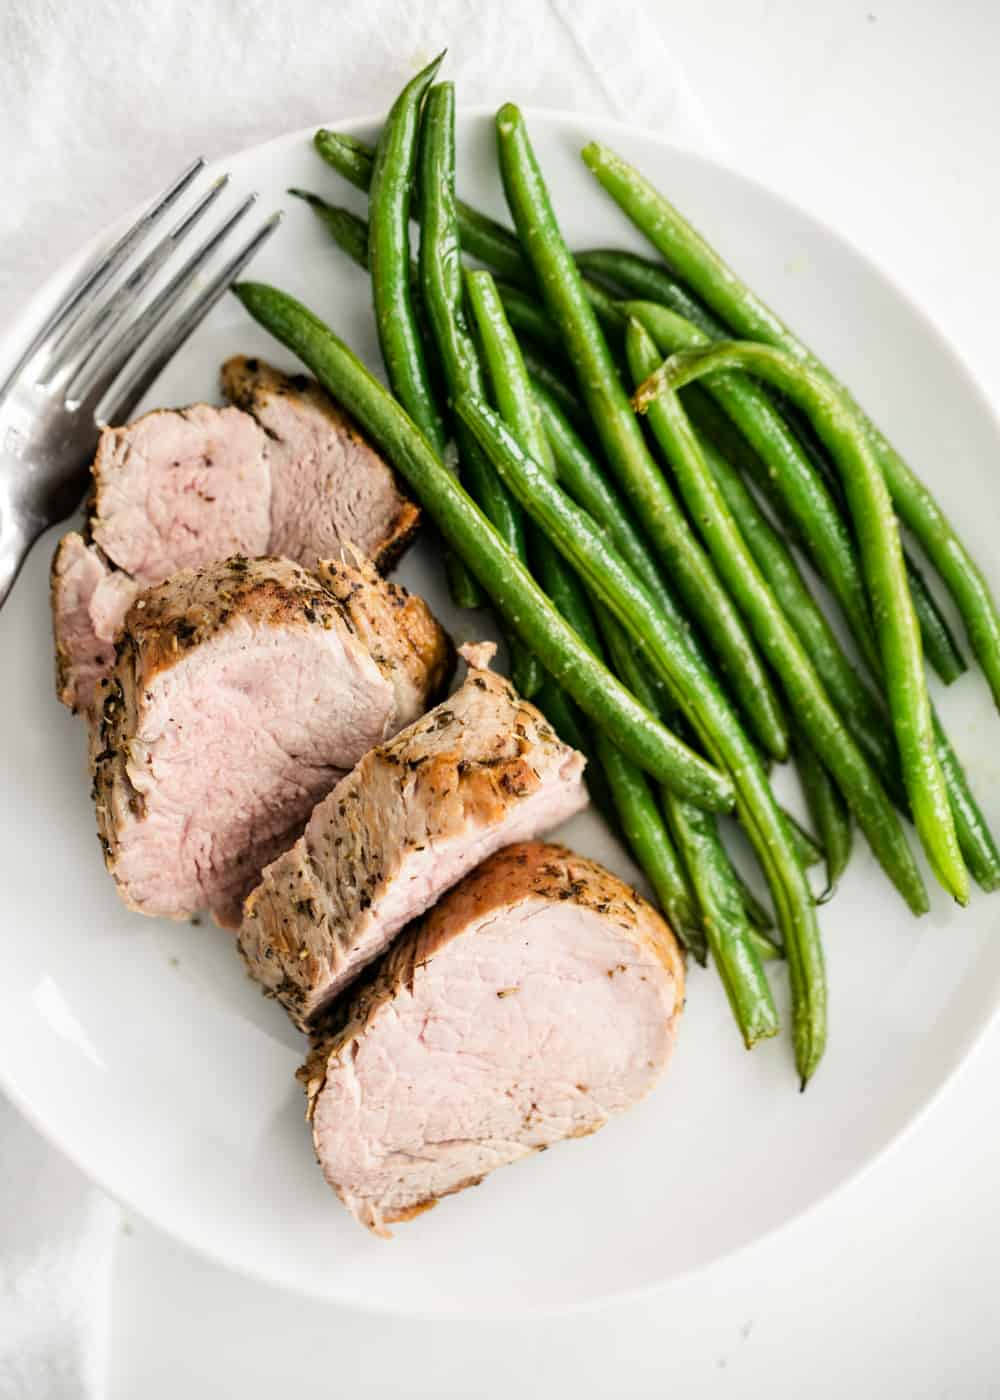 sliced pork tenderloin on a plate with green beans